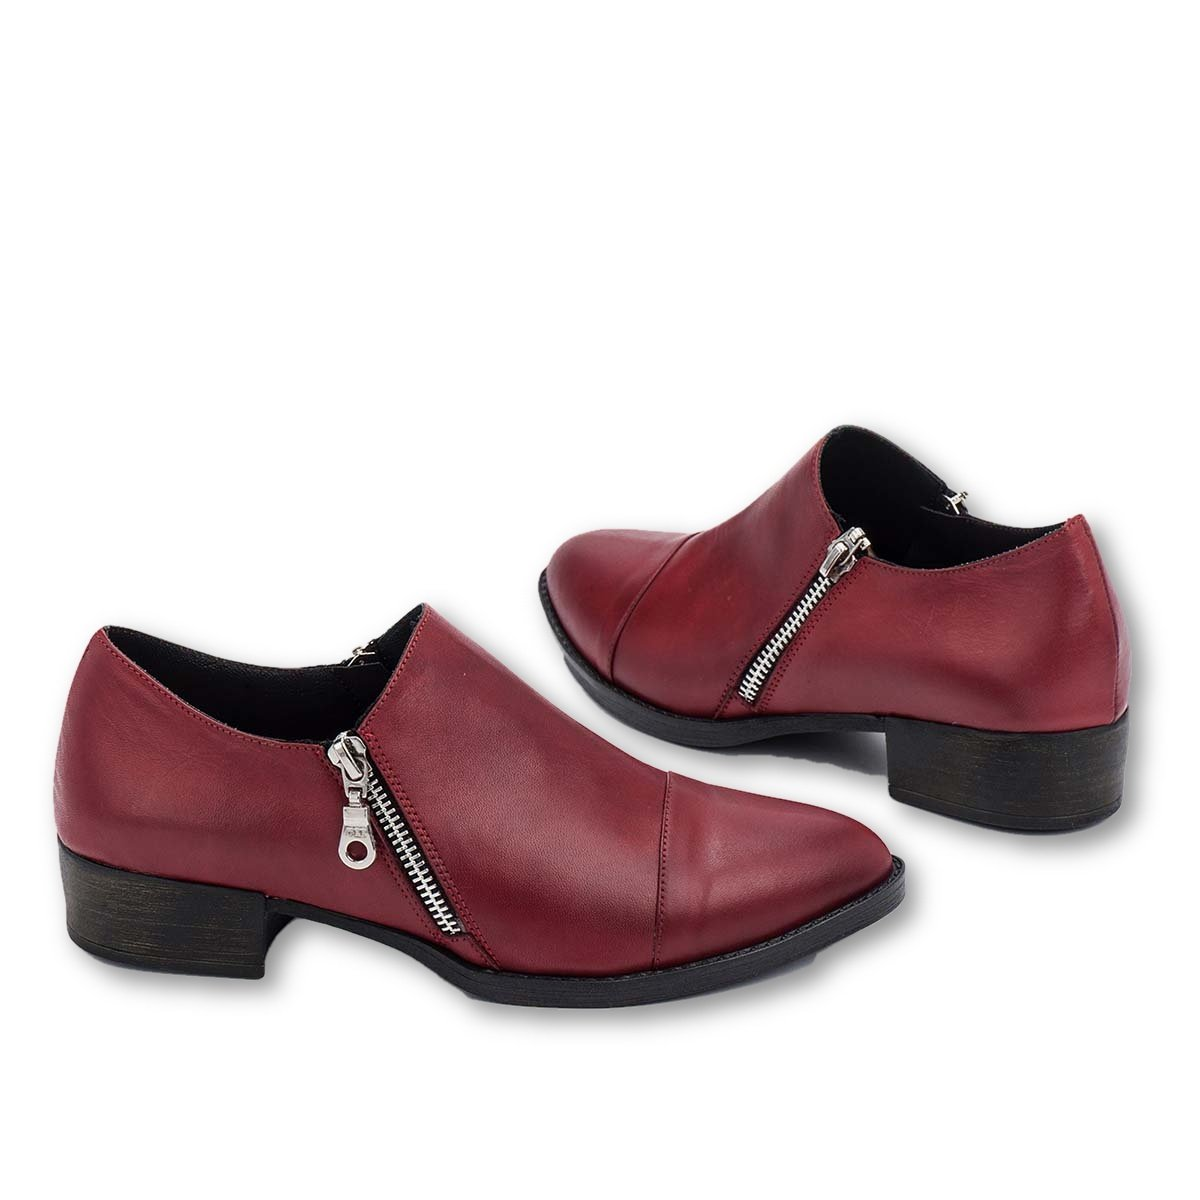 B-Unique Leather Loafers for Women Slip On Penny Loafer Pumps with Stacked Block Heel with YKK Zippers